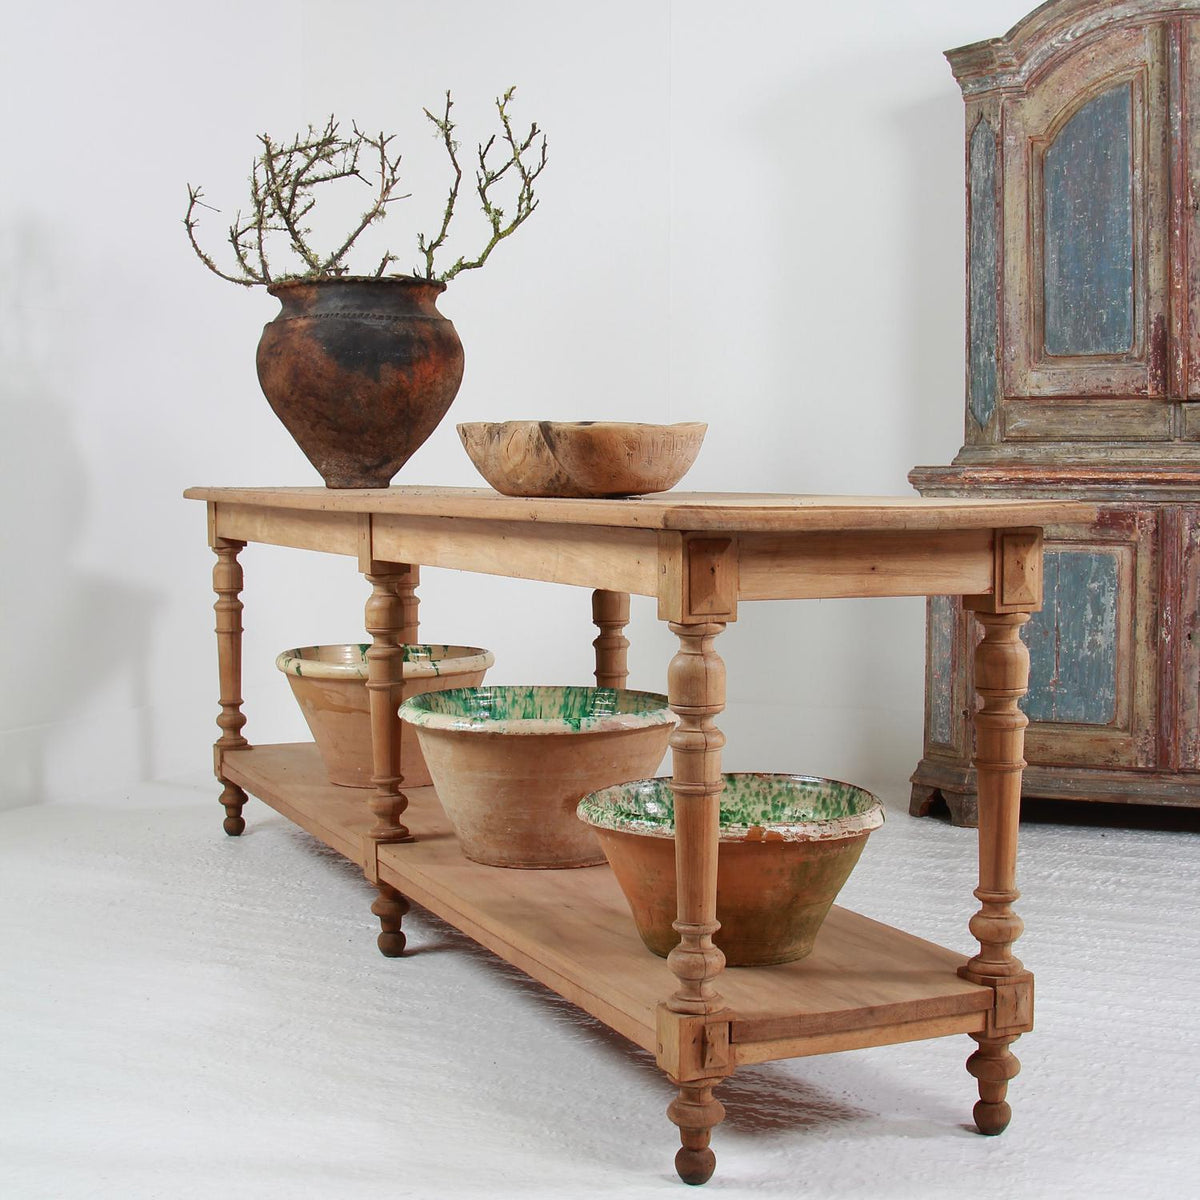 Outstanding 19th Century French Bleached Oak Draper's Table